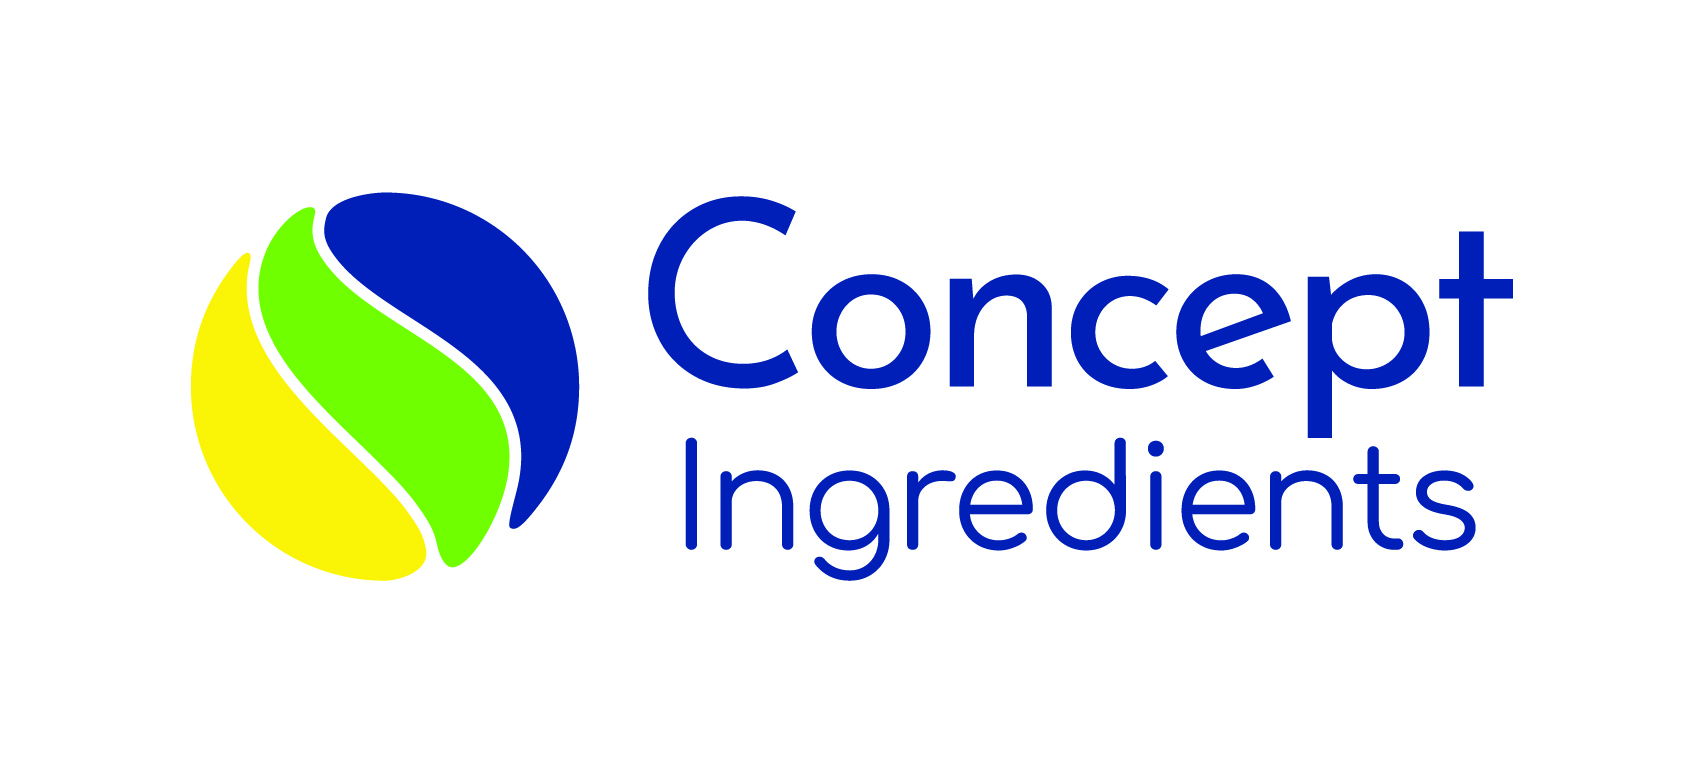 Concept Chemical